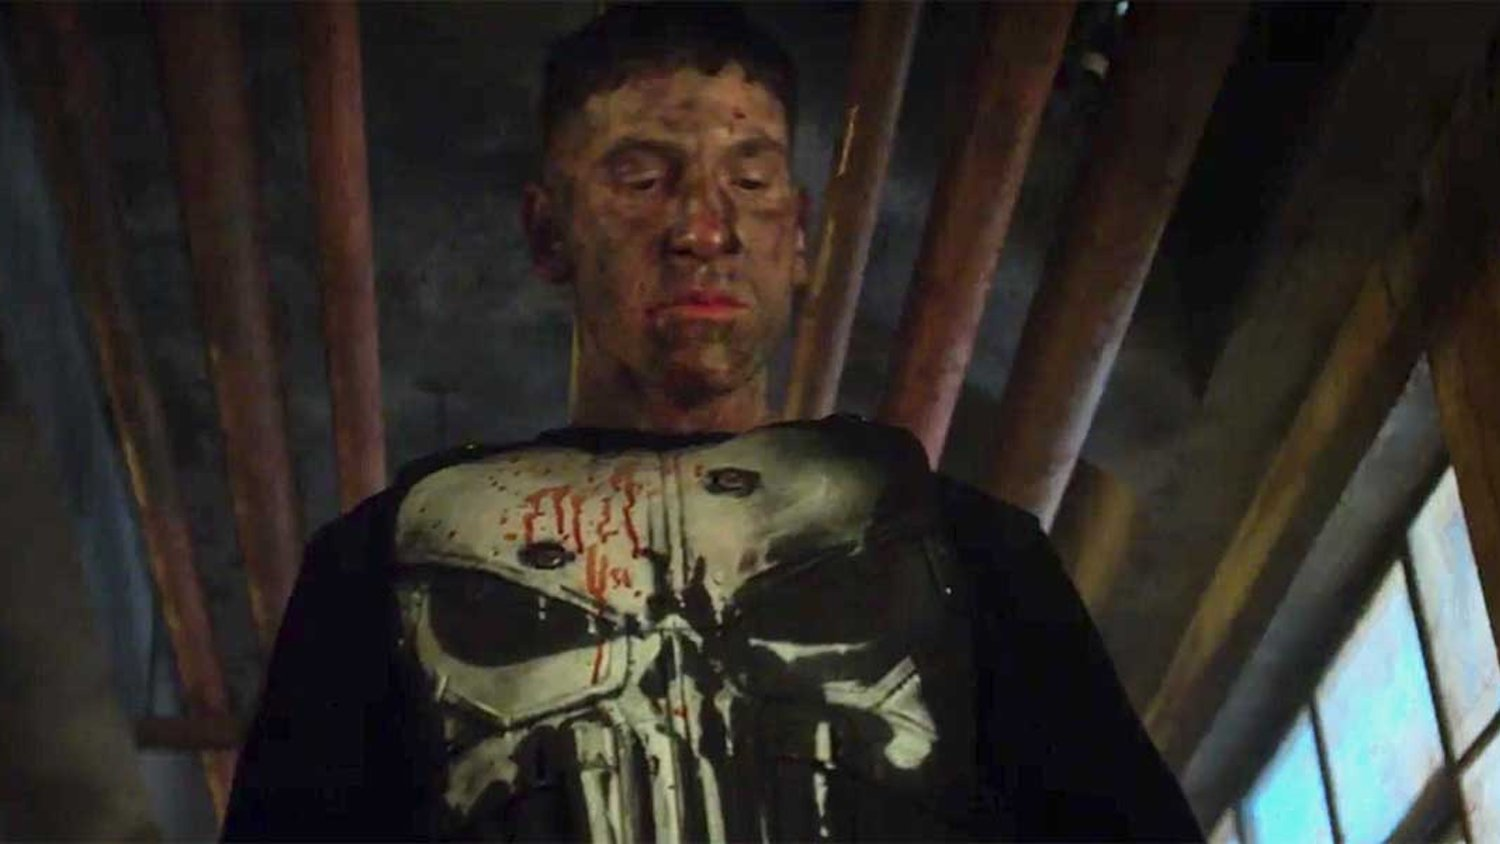 New Promo Spot For The Punisher And Jon Bernthal Says We Have Yet